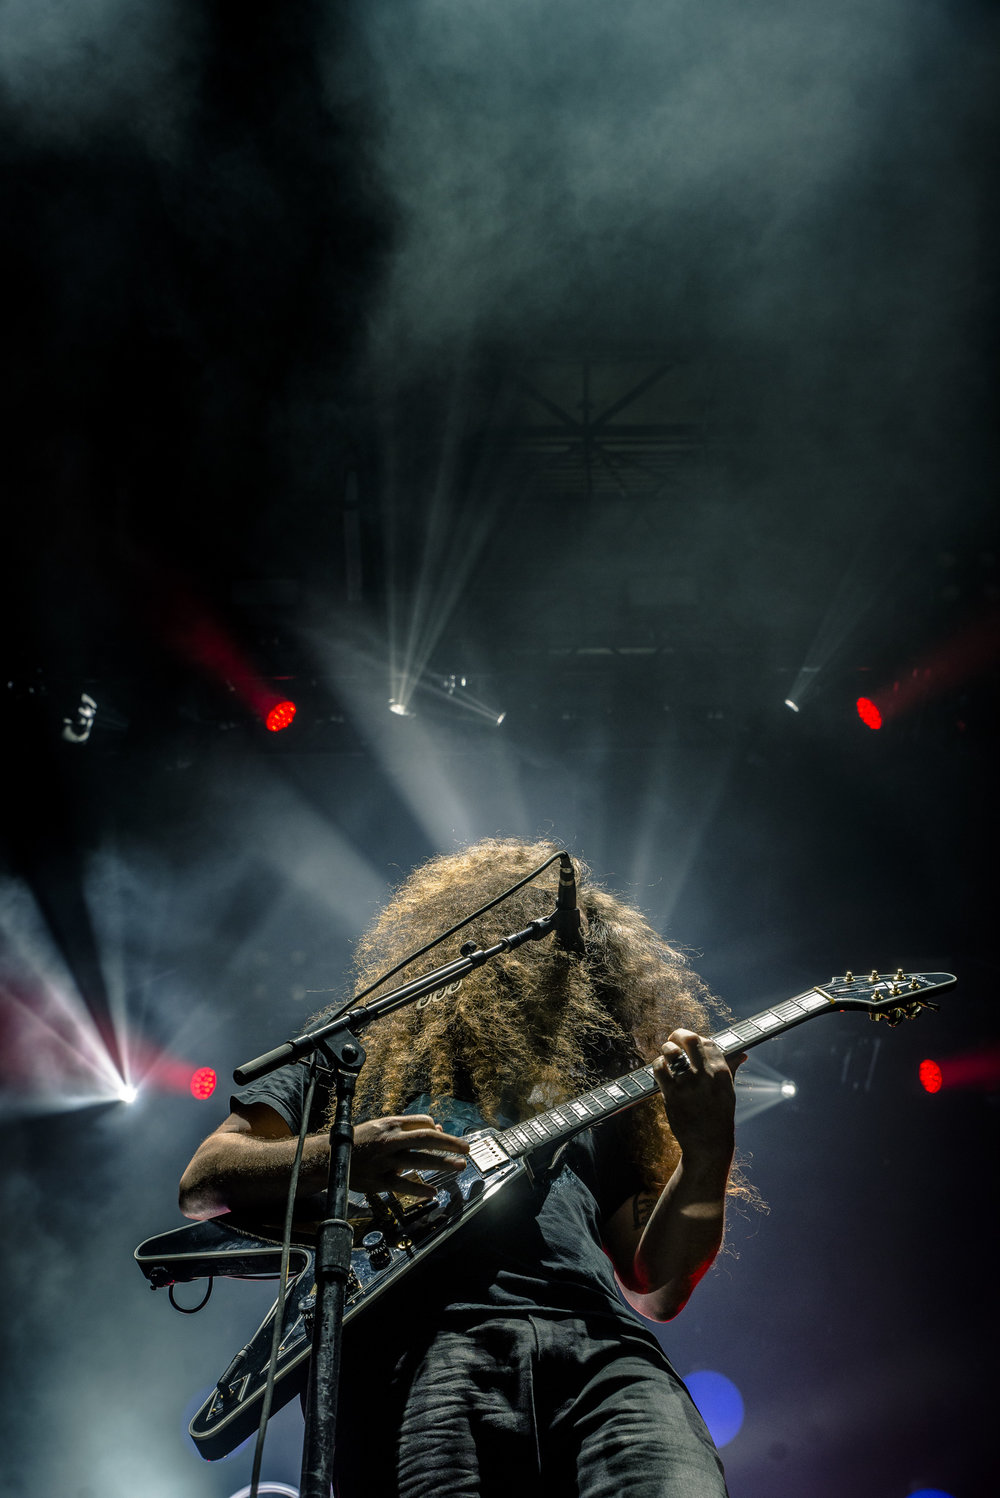 Coheed&Cambria@Sculpture_AustinVoldseth-45.jpg